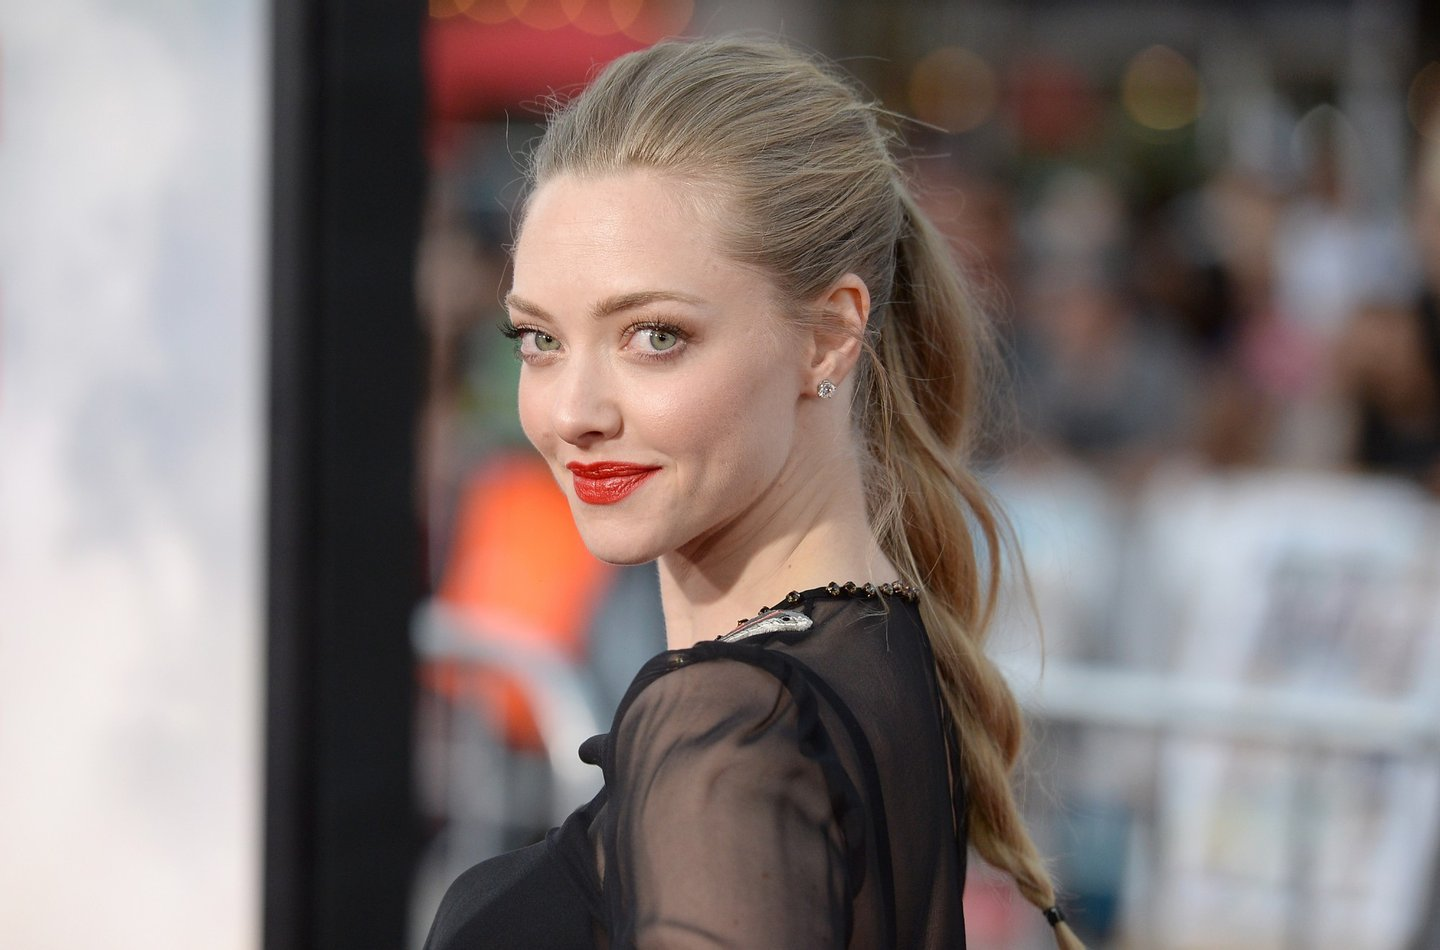 WESTWOOD, CA - MAY 15: Actress Amanda Seyfried attends the premiere of Universal Pictures and MRC's 'A Million Ways To Die at The West' at Regency Village Theatre on May 15, 2014 in Westwood, California. (Photo by Jason Merritt/Getty Images)